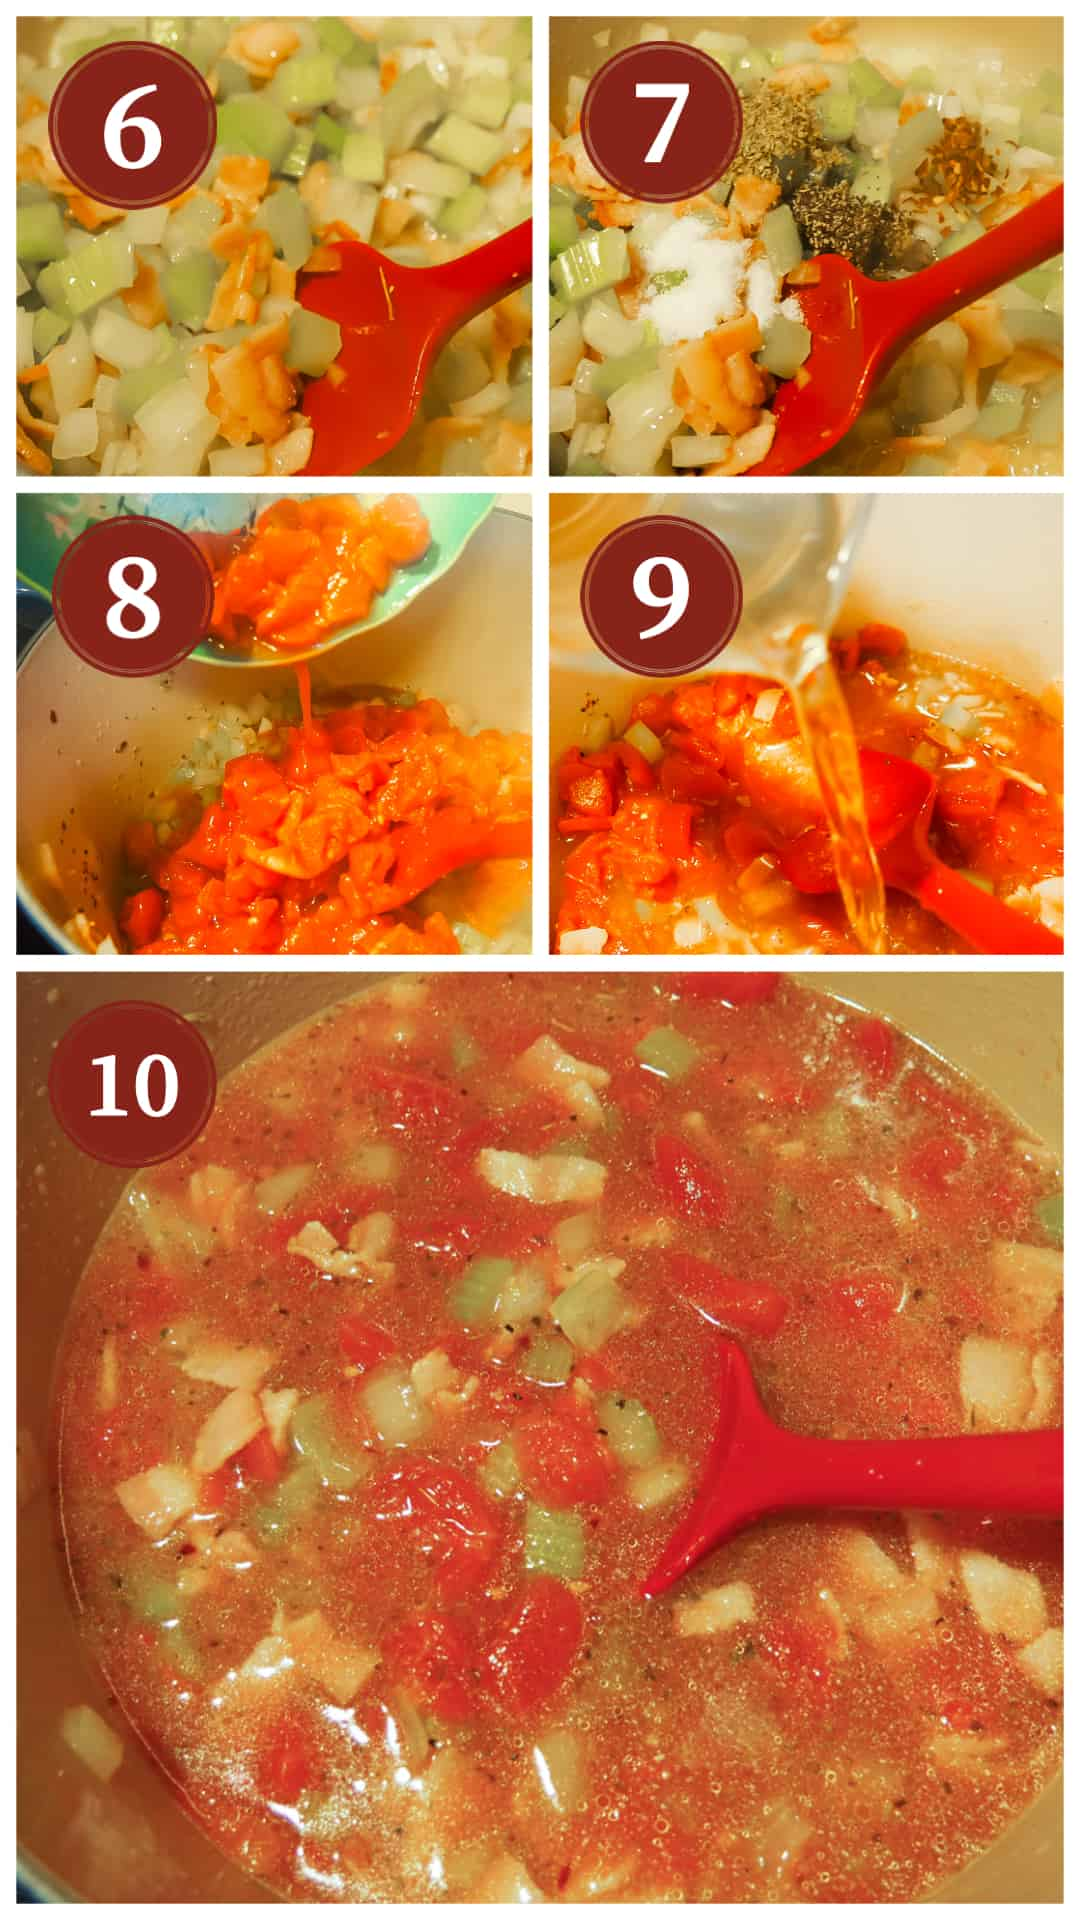 Images of the process of making pasta e fagioli, steps 6 - 10.